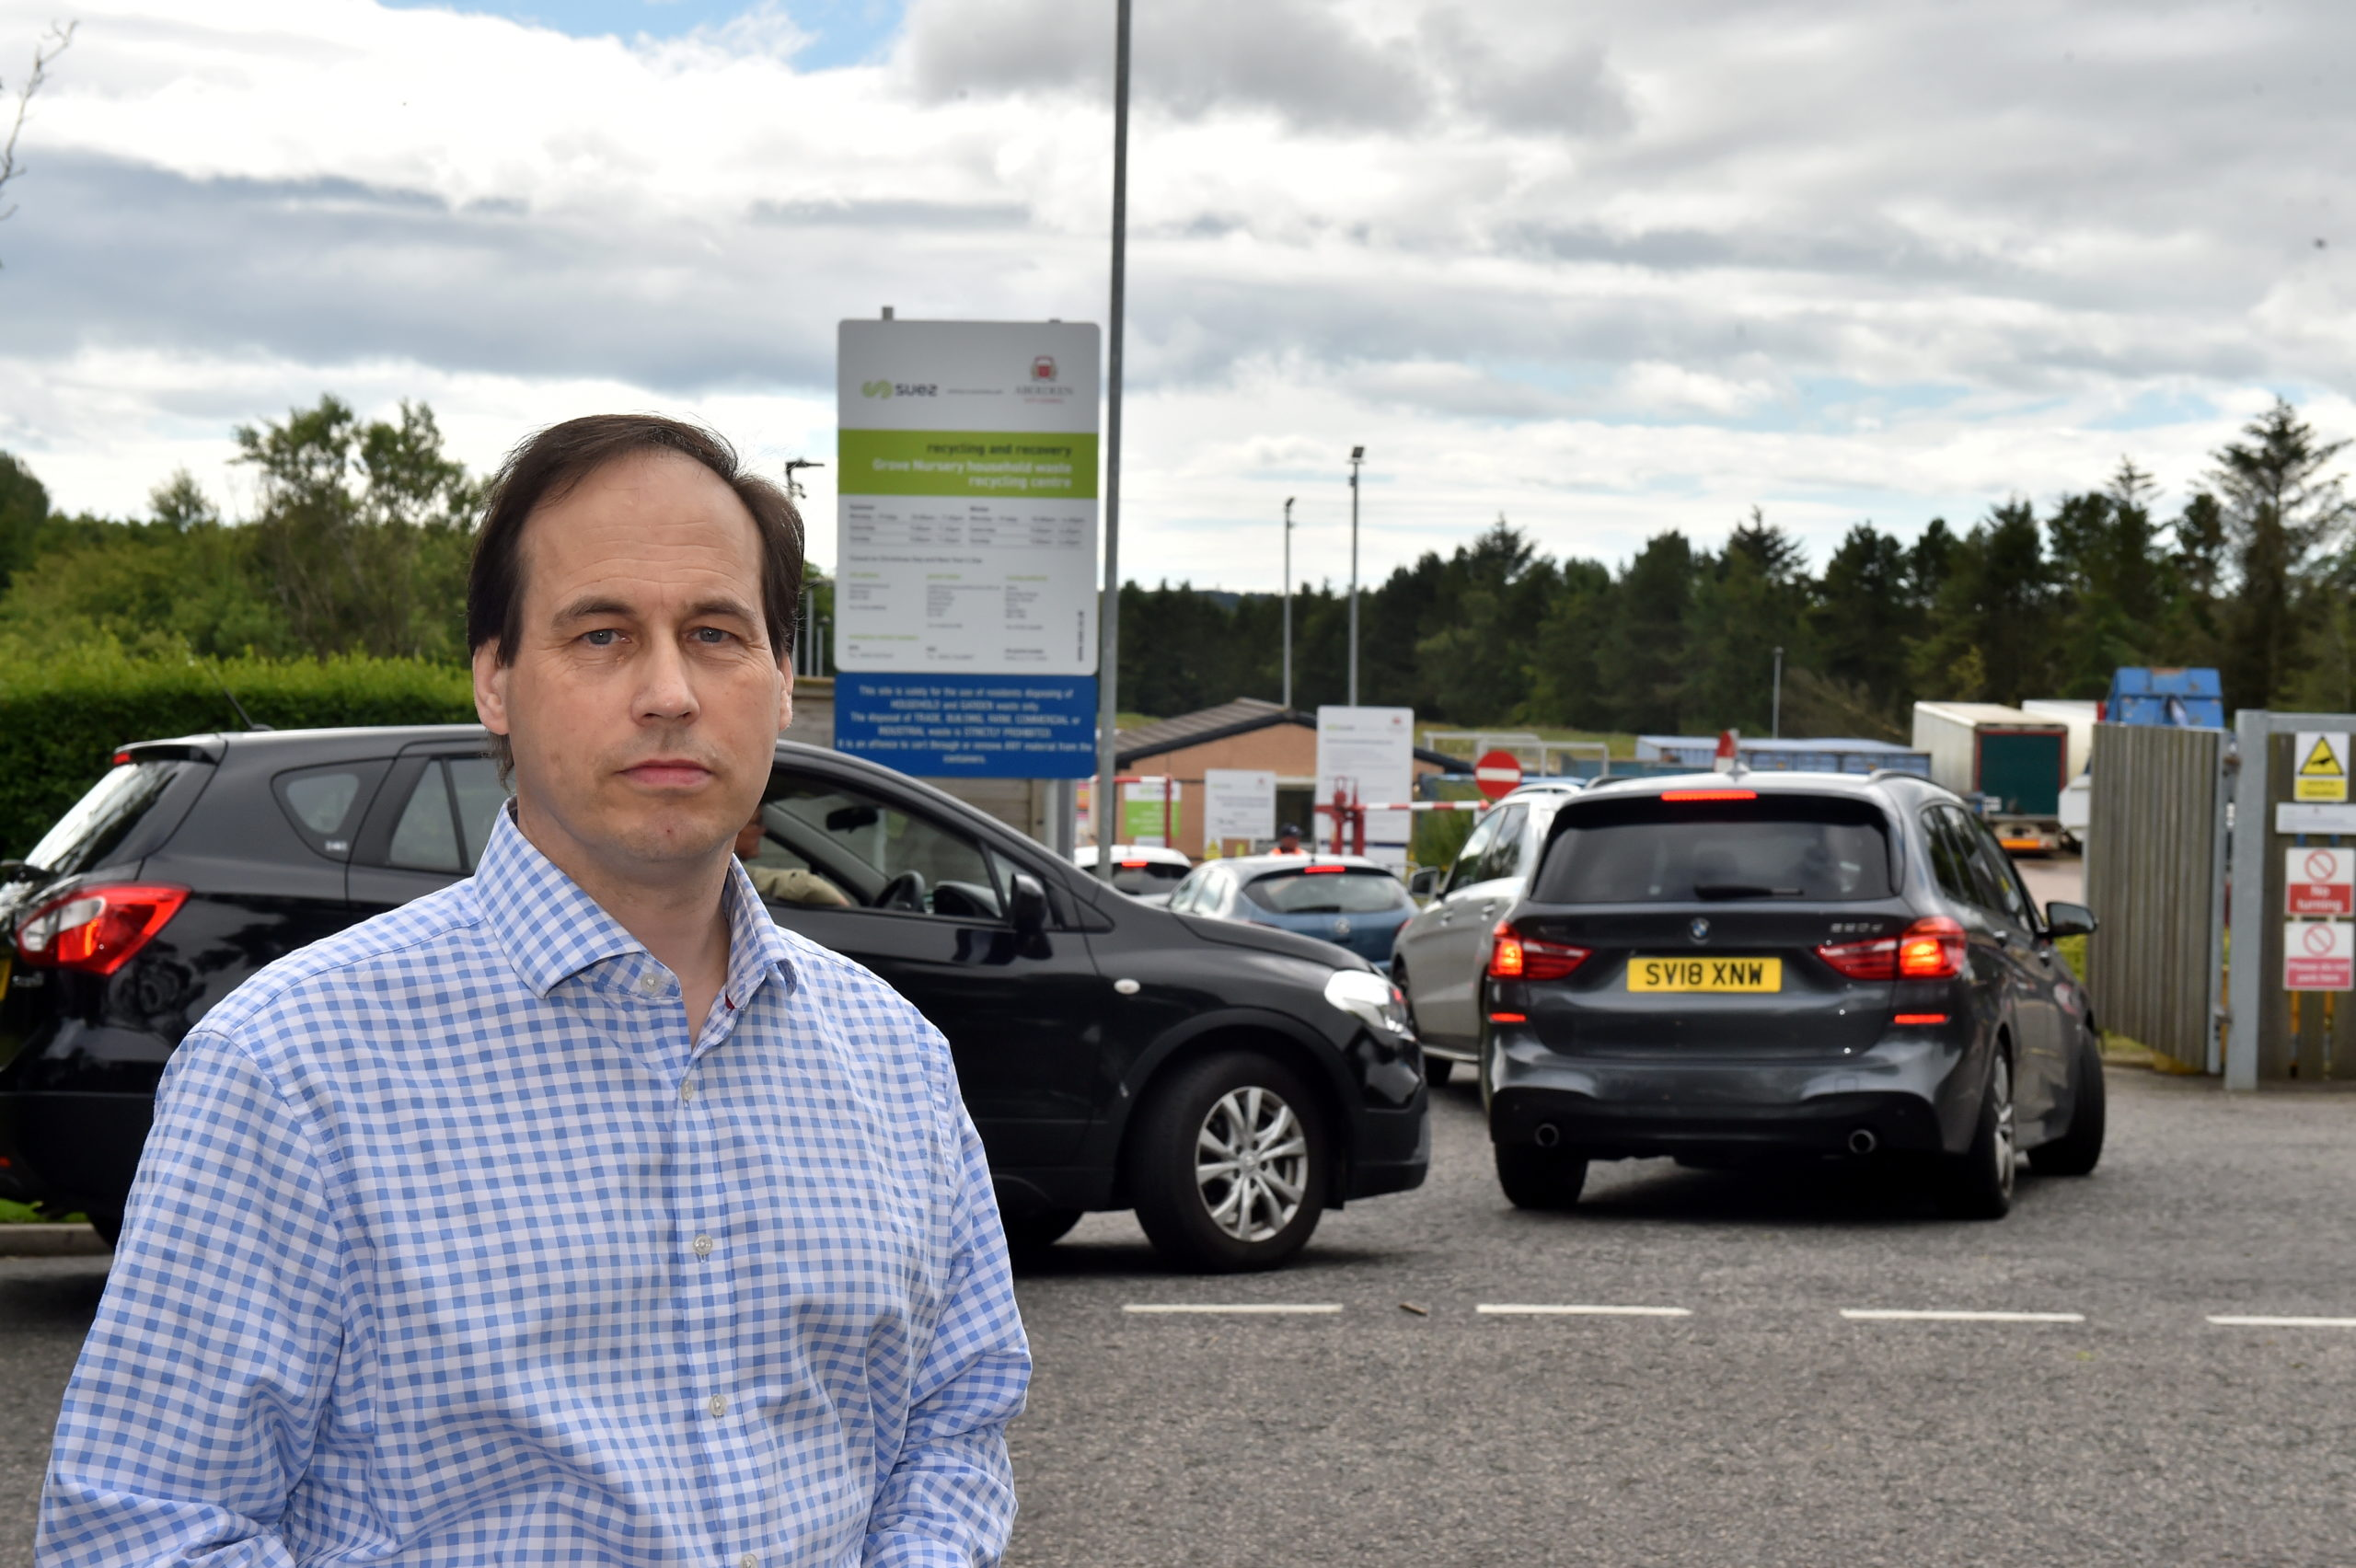 Councillor Martin Greig is calling for the one-way system in Hazlehead Avenue to be reintroduced.